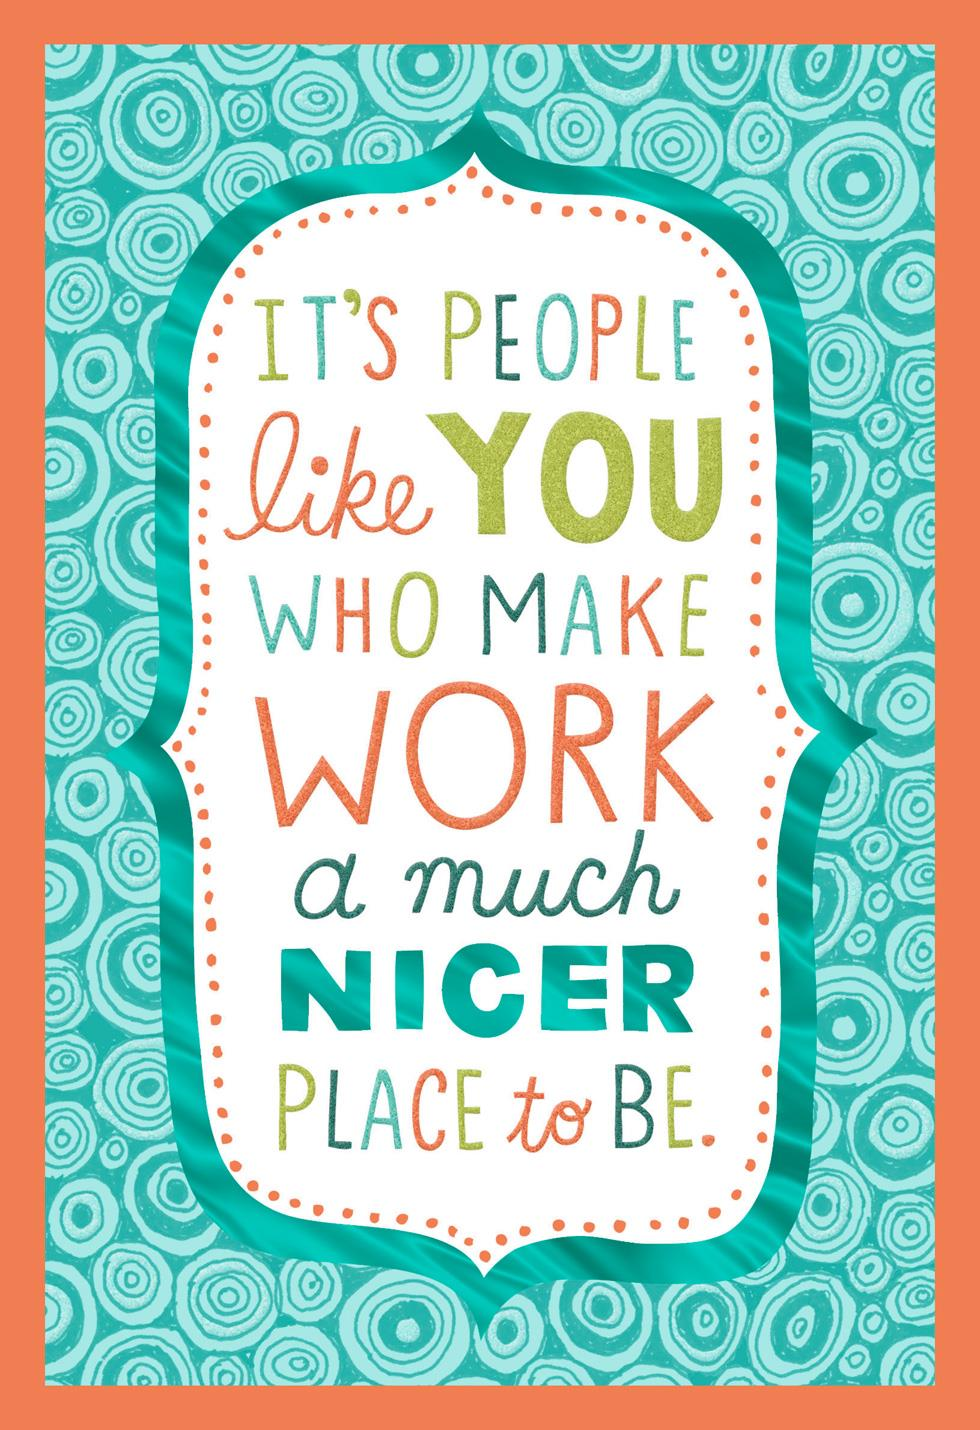 You Make Work A Nicer Place Admin Professionals Day Card